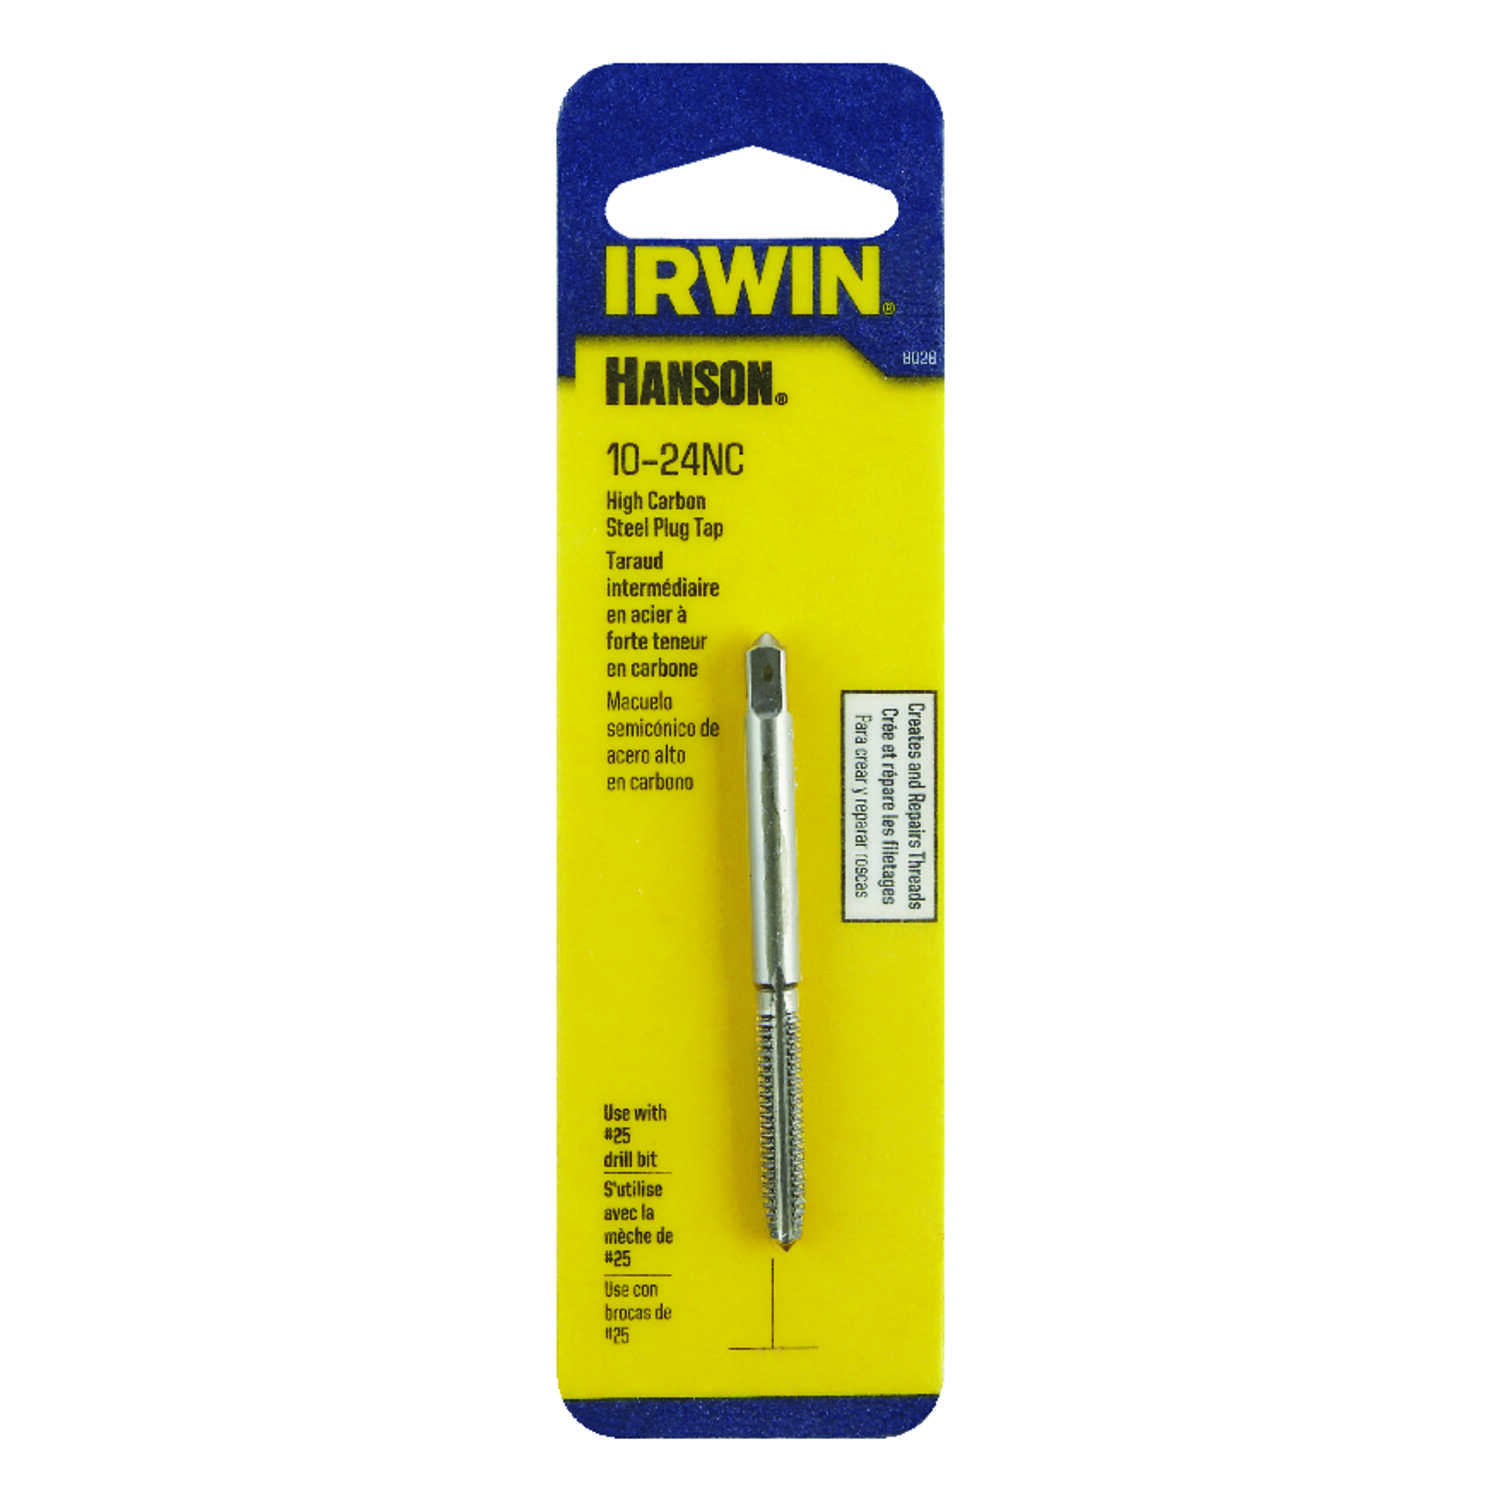 Irwin  Hanson  High Carbon Steel  SAE  Plug Tap  10-24NC  1 pc.